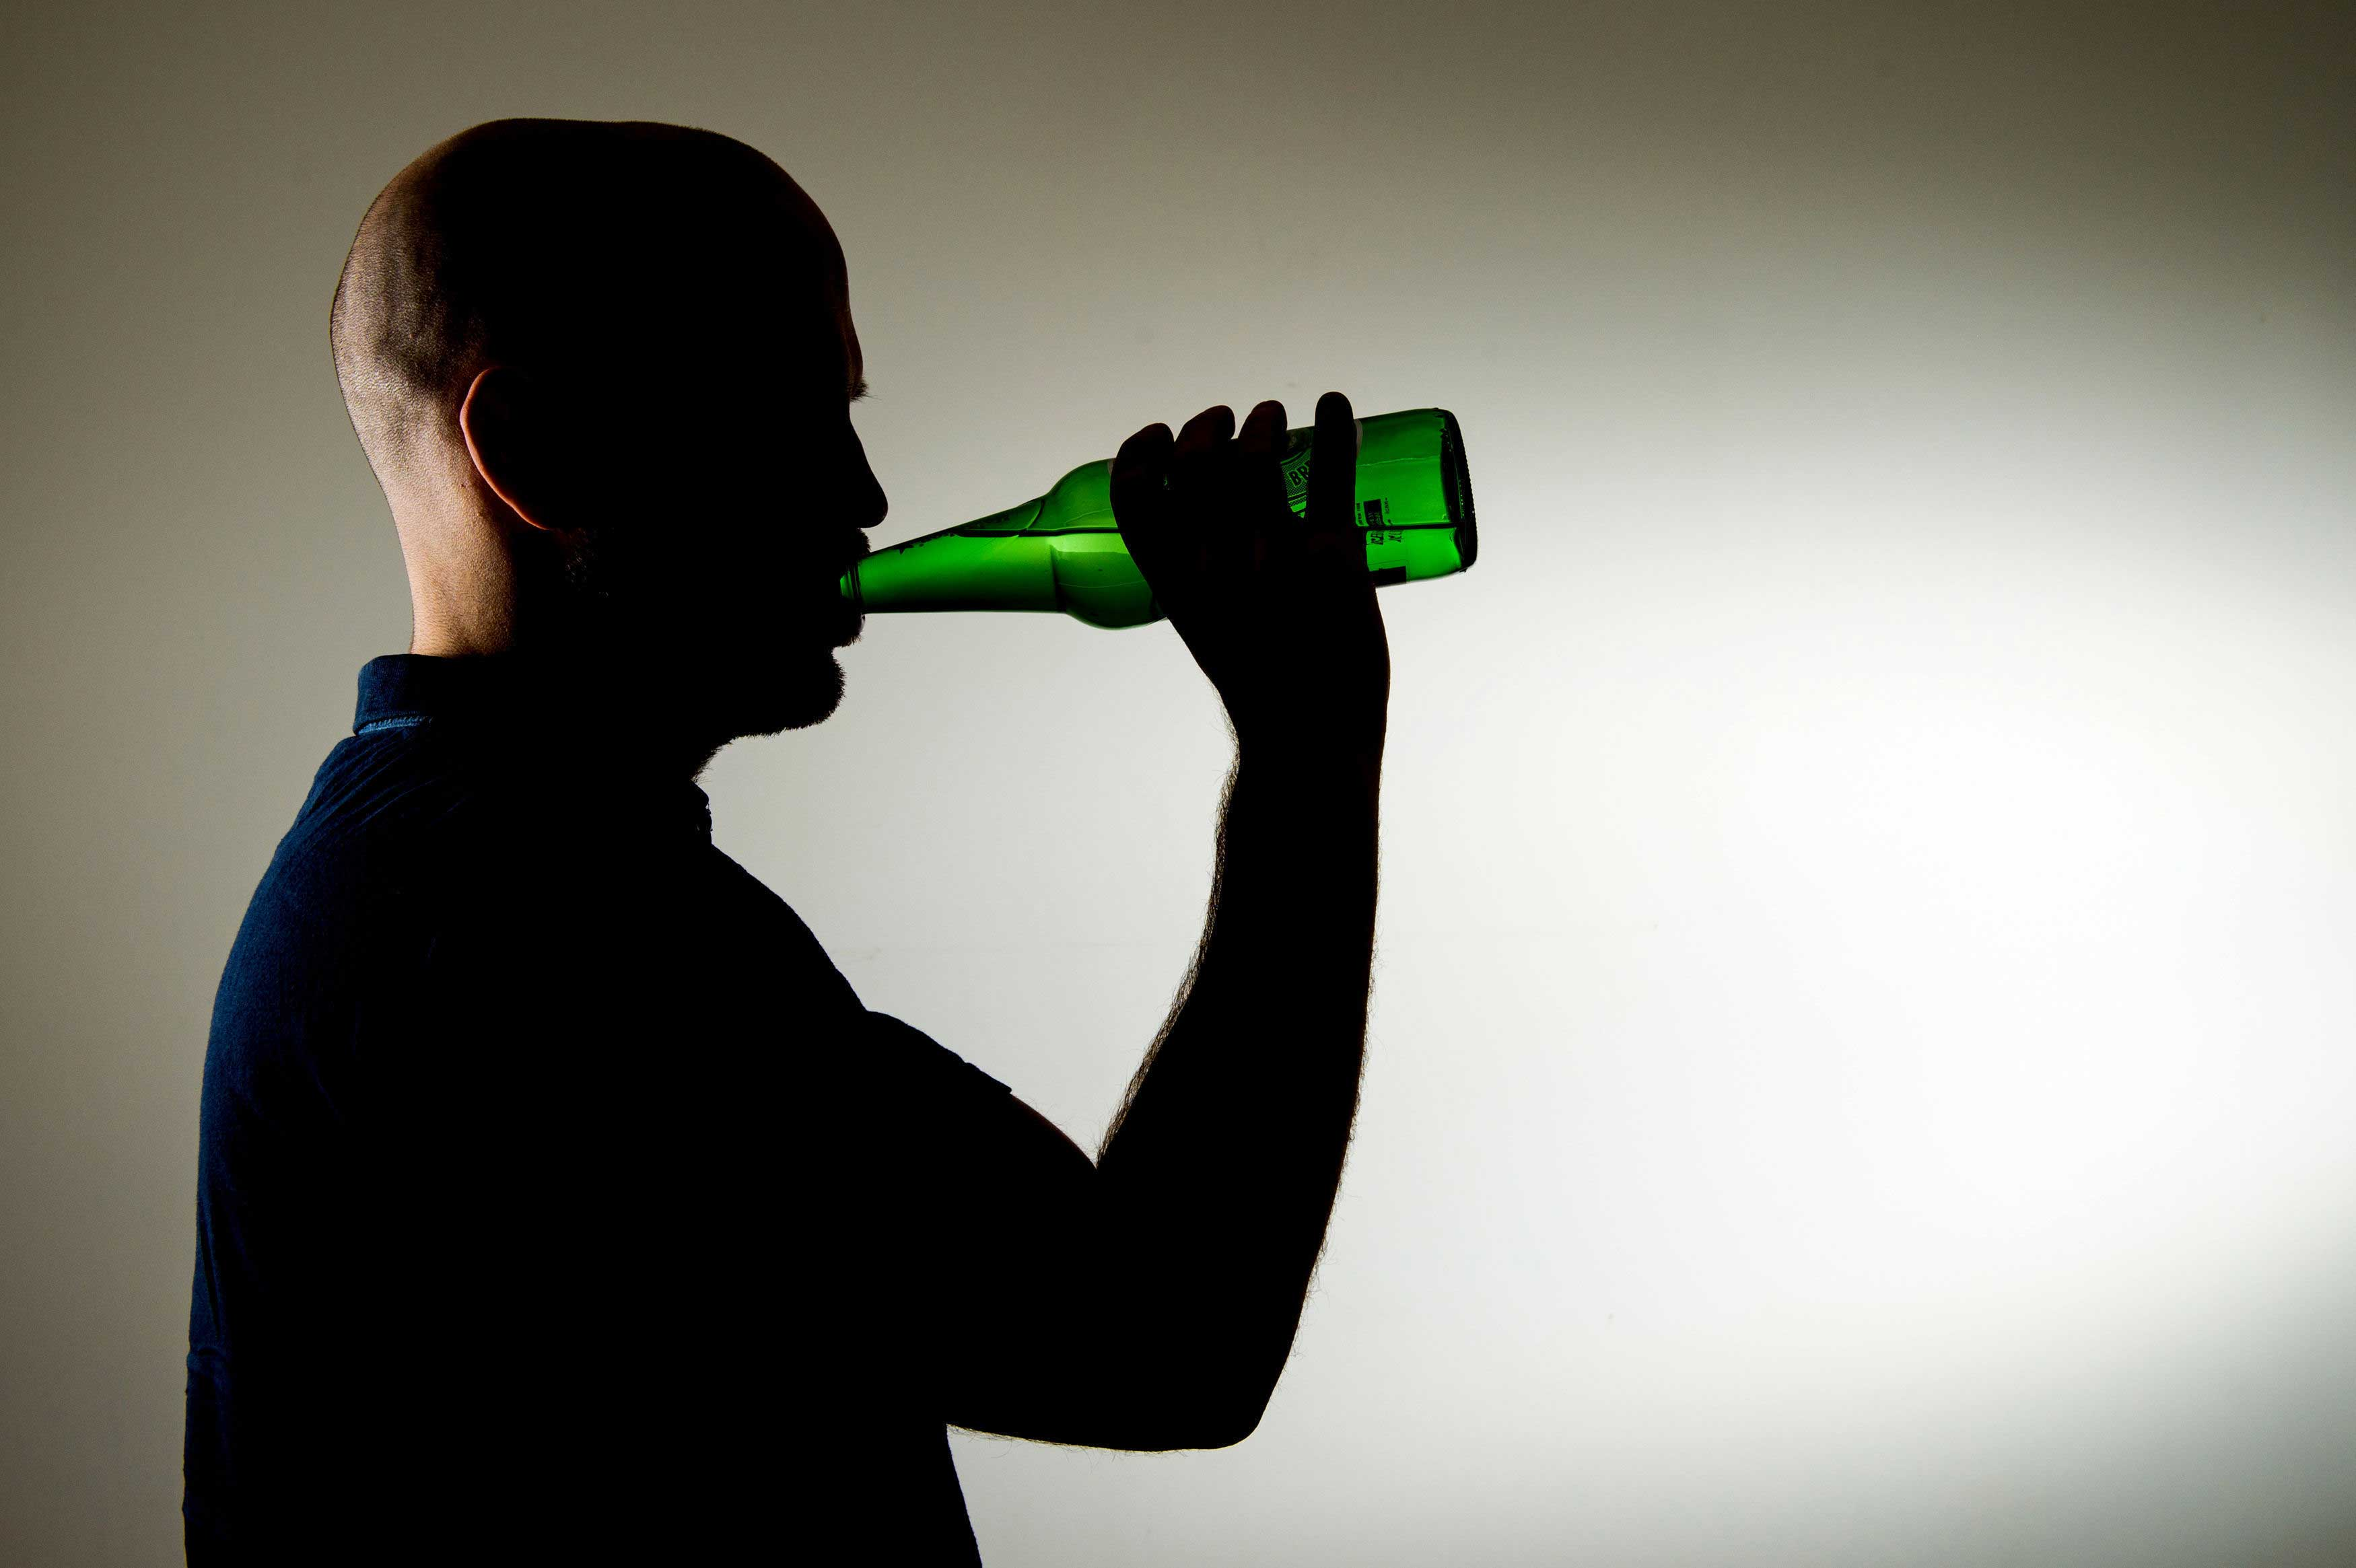 Consuming more than five drinks a week could shorten your life